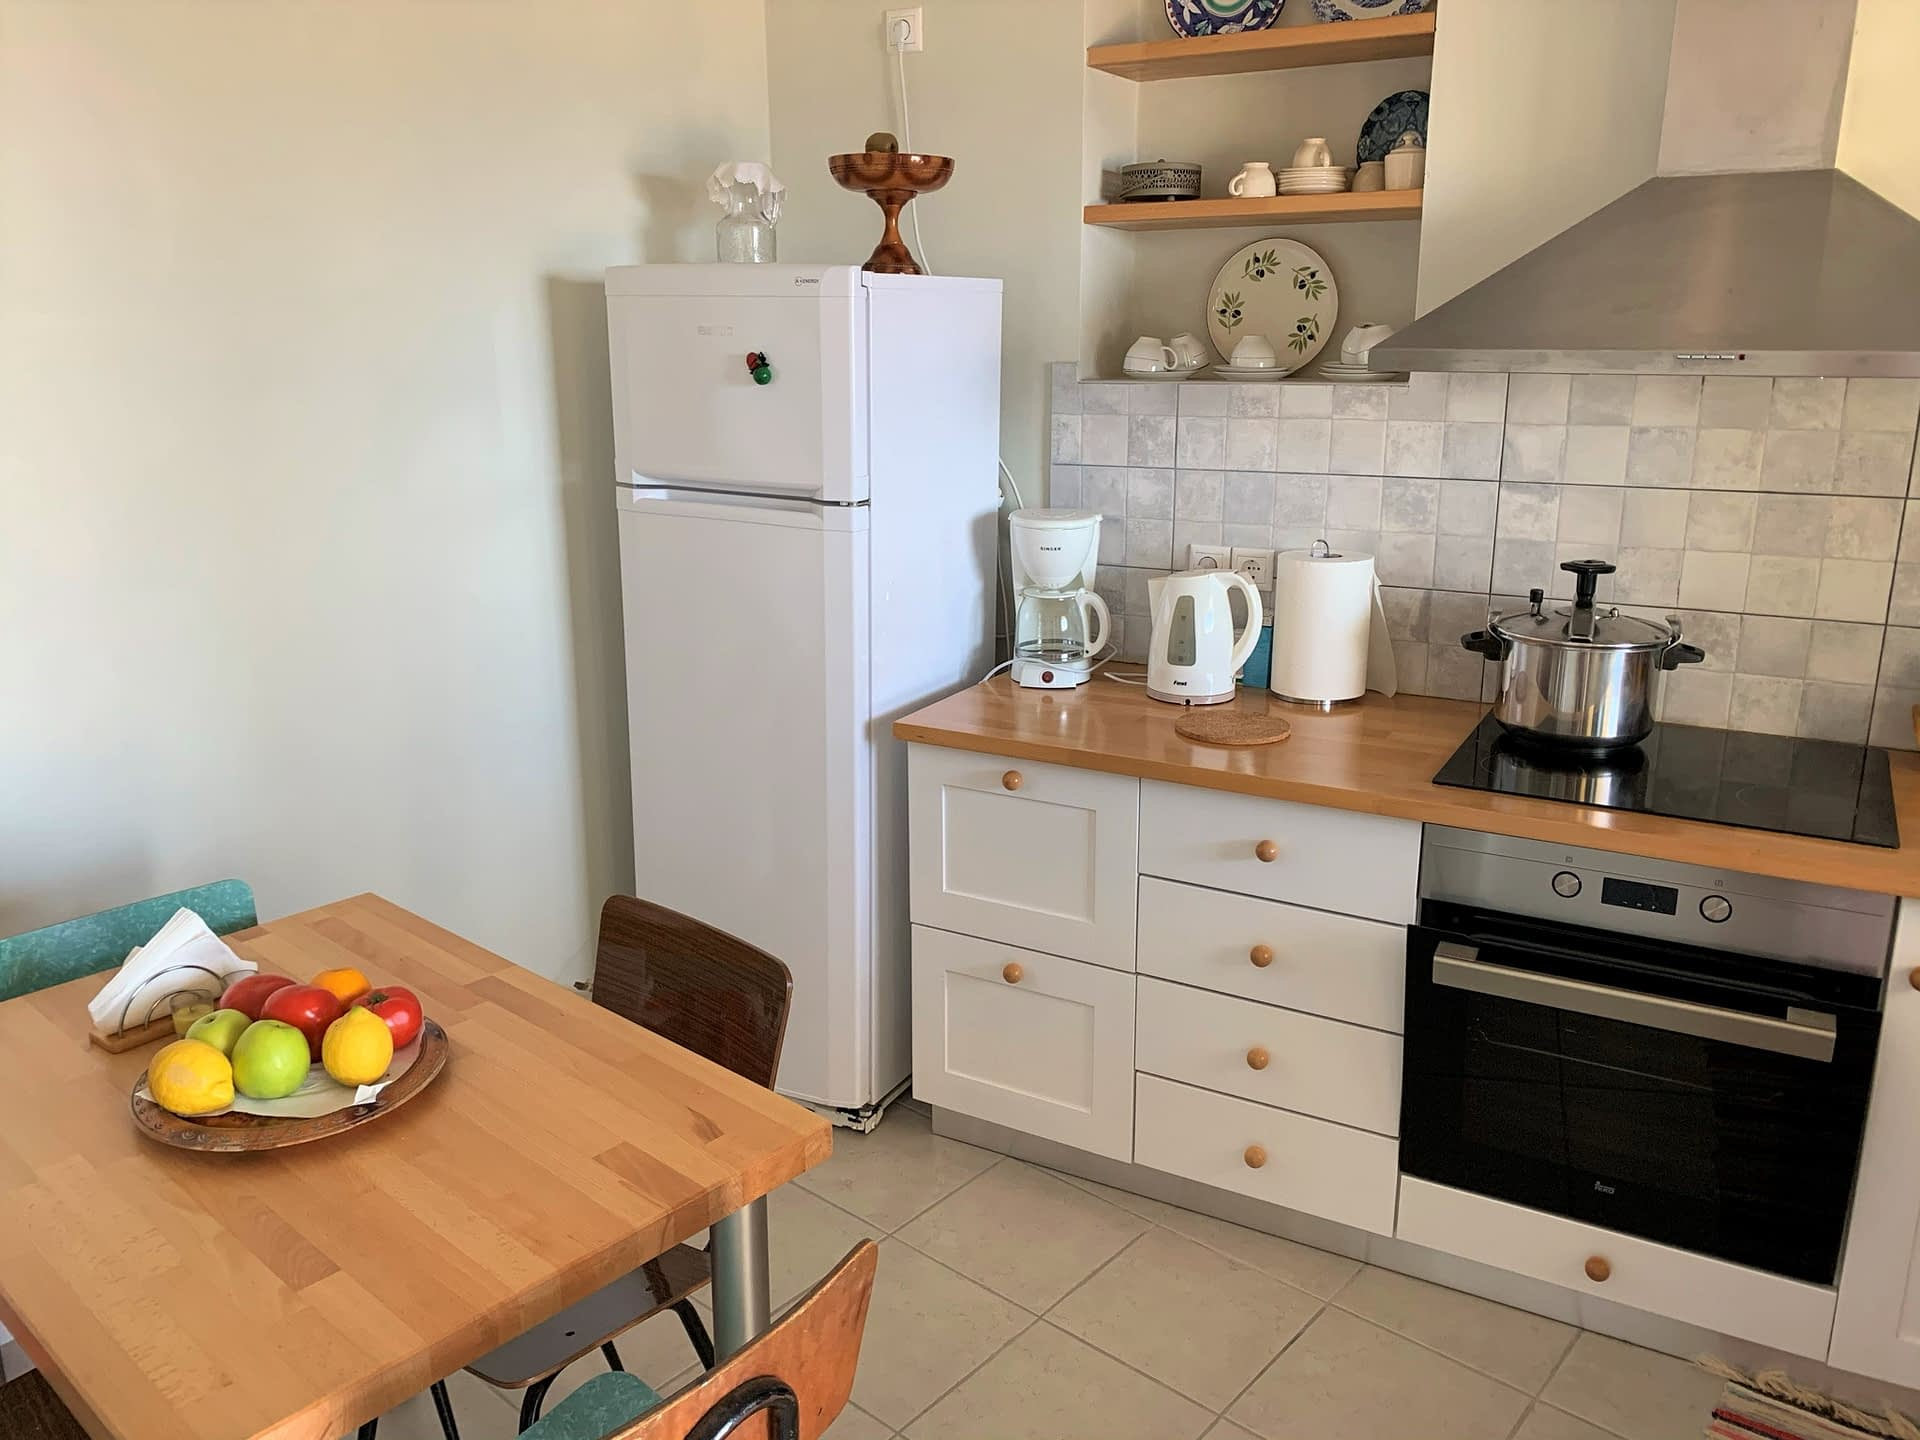 Kitchen of house to rent in Ithaca Greece, Kioni